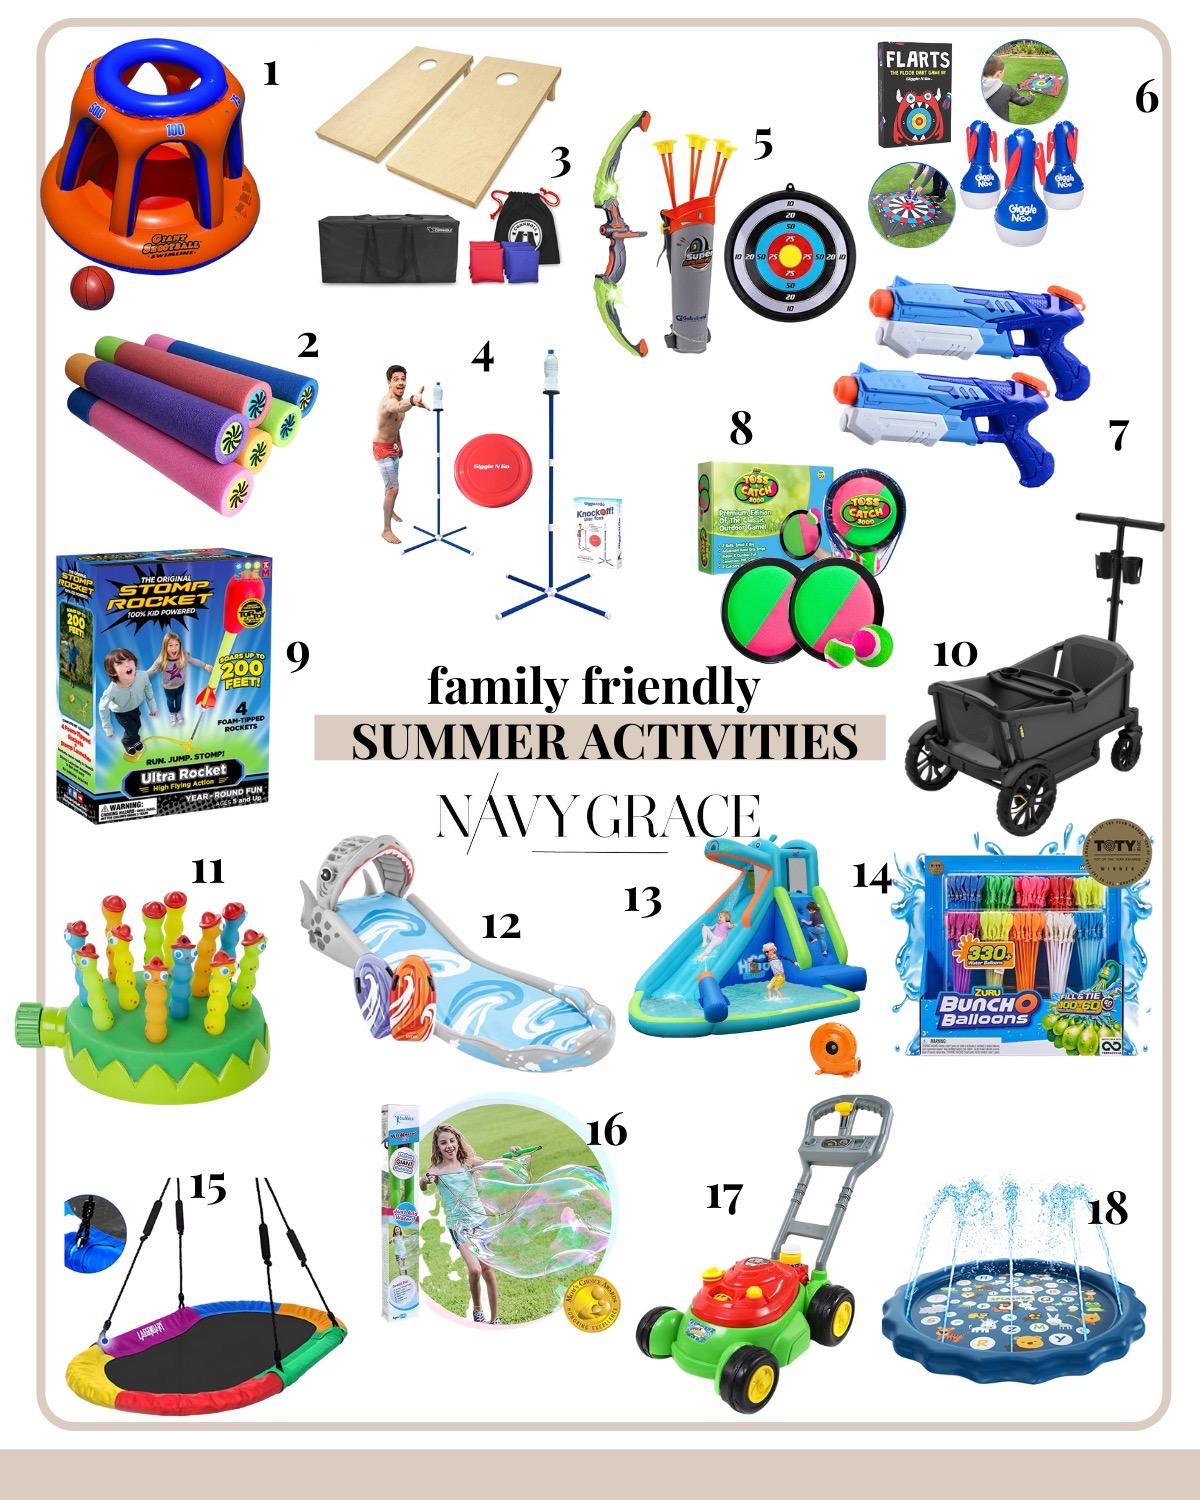 18 SUPER FUN OUTDOOR ACTIVITIES FOR YOUR FAMILY THIS SUMMER featured by top San Diego lifestyle blogger, Navy Grace | Family Outdoor Activities by popular San Diego lifestyle blog, Navy Grace: collage image of a stomp rocket, bubble lawn mower, bunch o balloons, flarts lawn darts, tree swing, water guns, corn hole, Melissa and Doug Splash patrol sprinkler, Knock it off game, toss and catch game, inflatable water slide,bow and arrow, Veer gear wagon, and giant bubble wands.